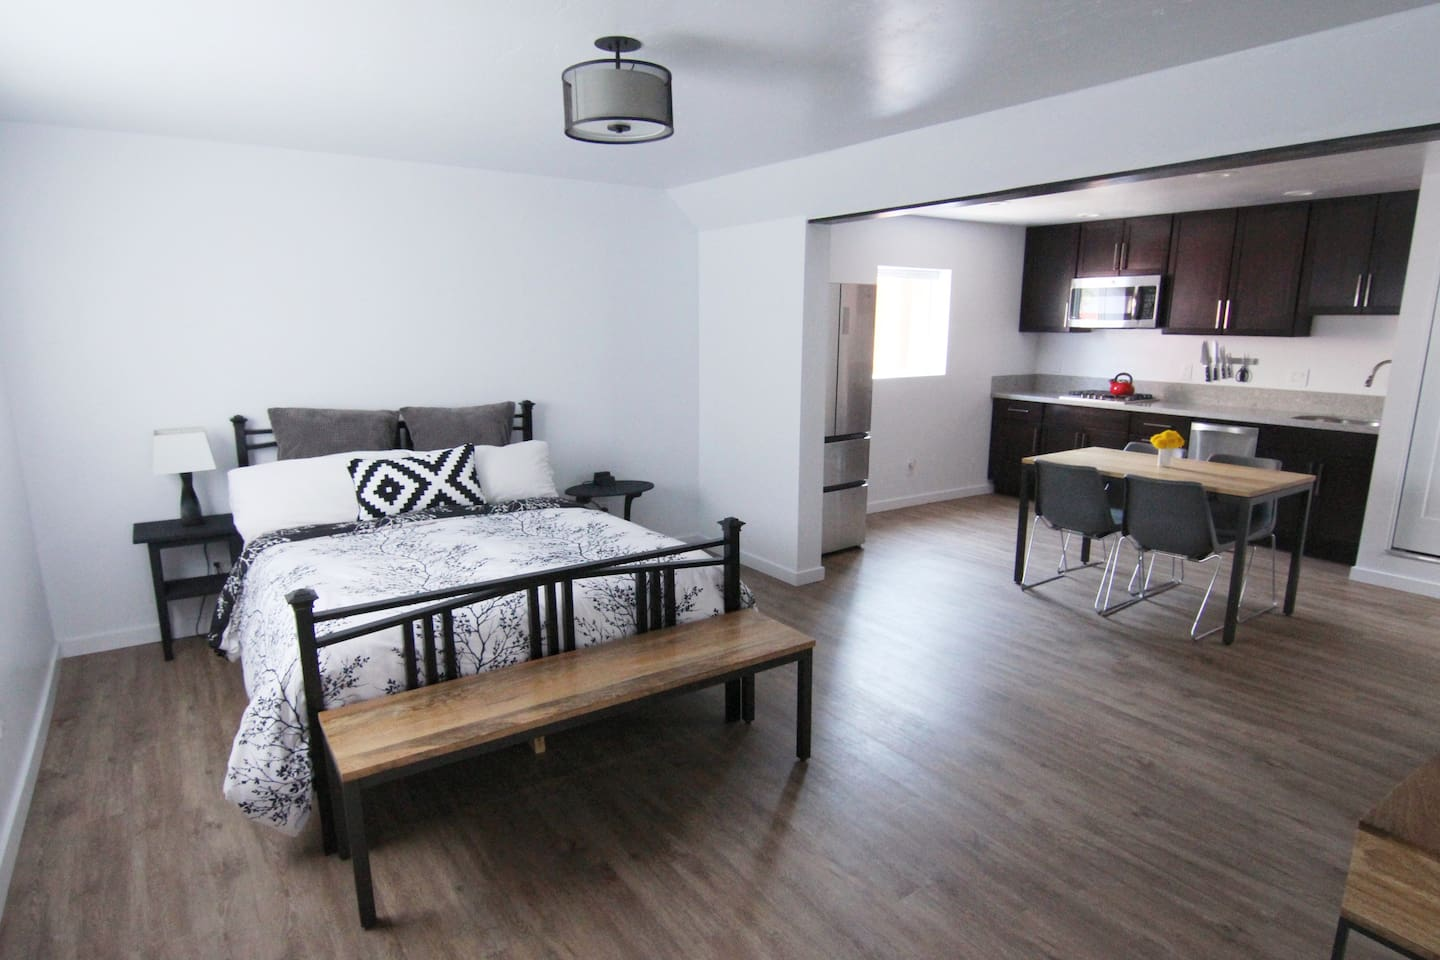 Welcome to your home away from home: a brand new, luxurious studio in the mountains of Truckee!